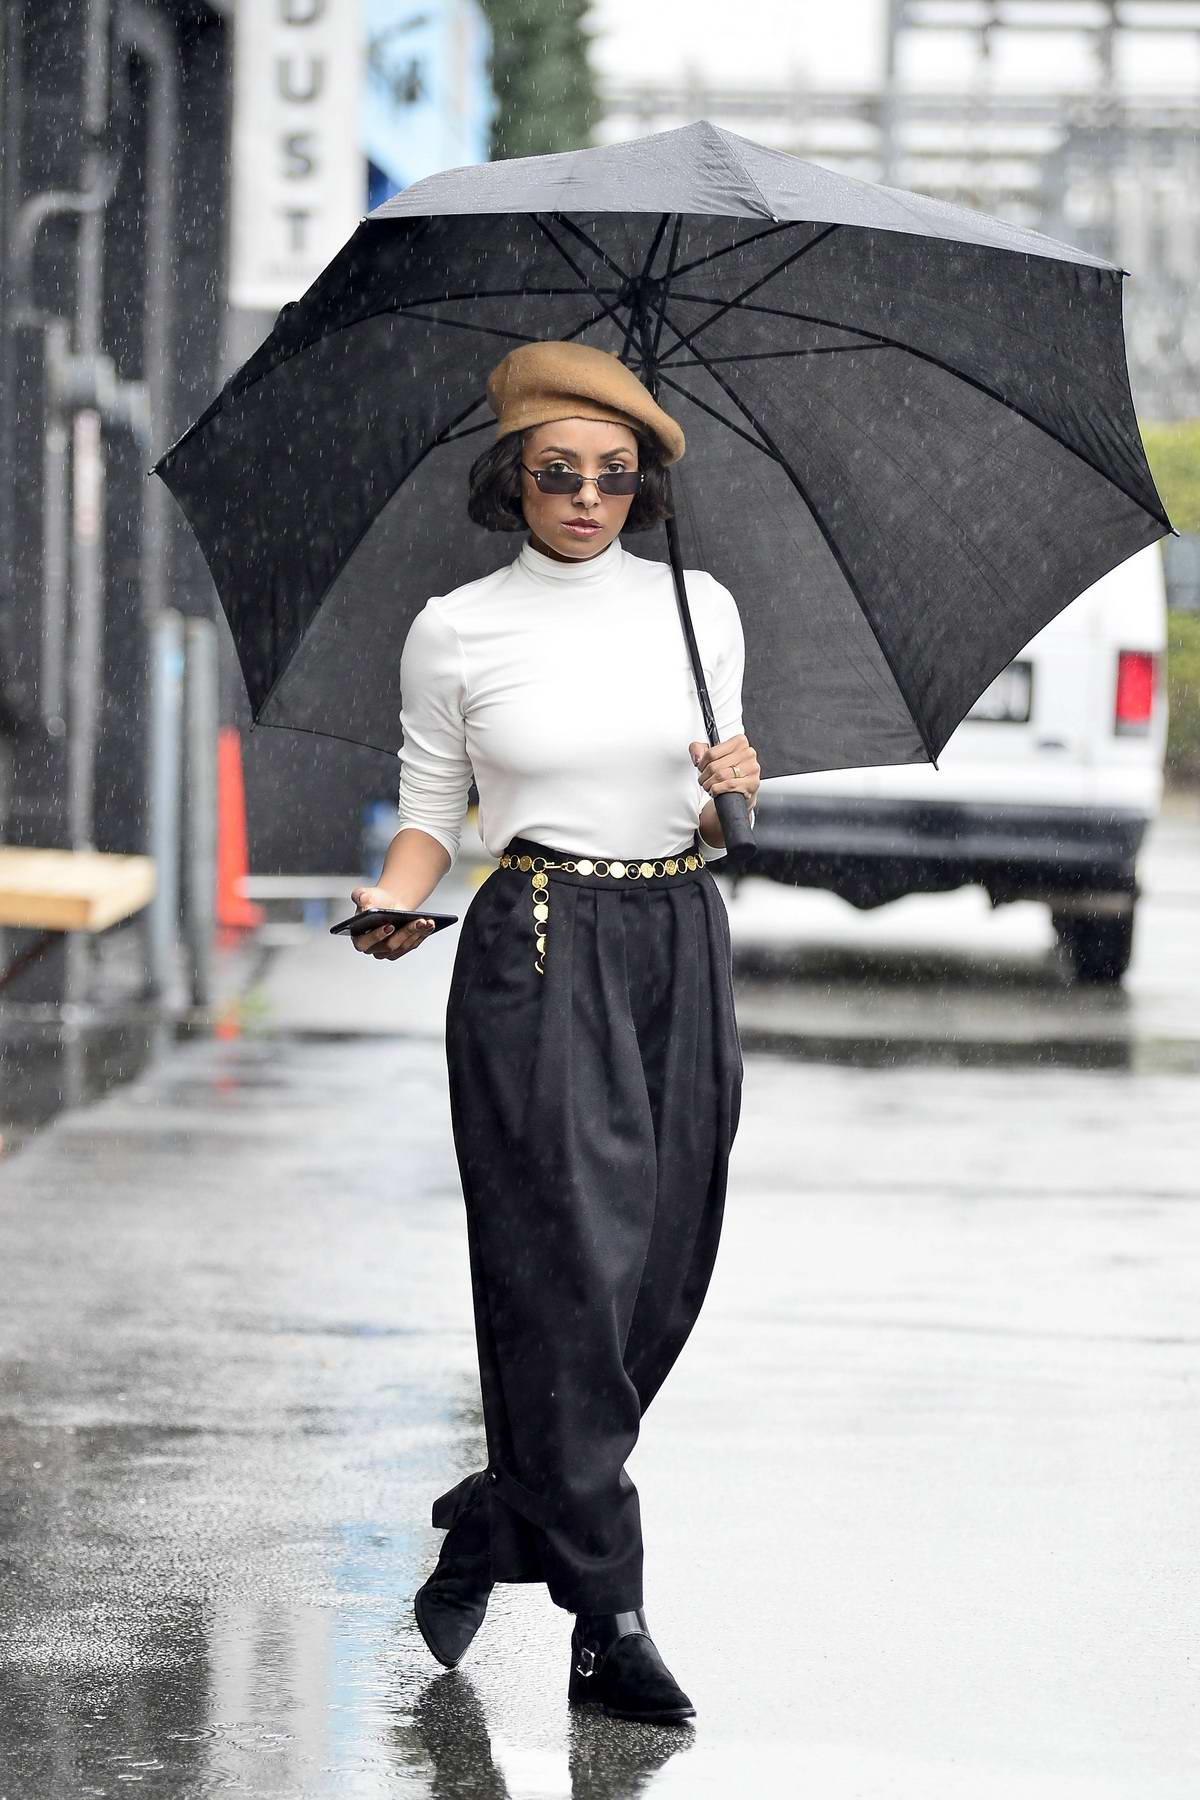 Kat Graham gets caught in the rain during a photoshoot in Los Angeles